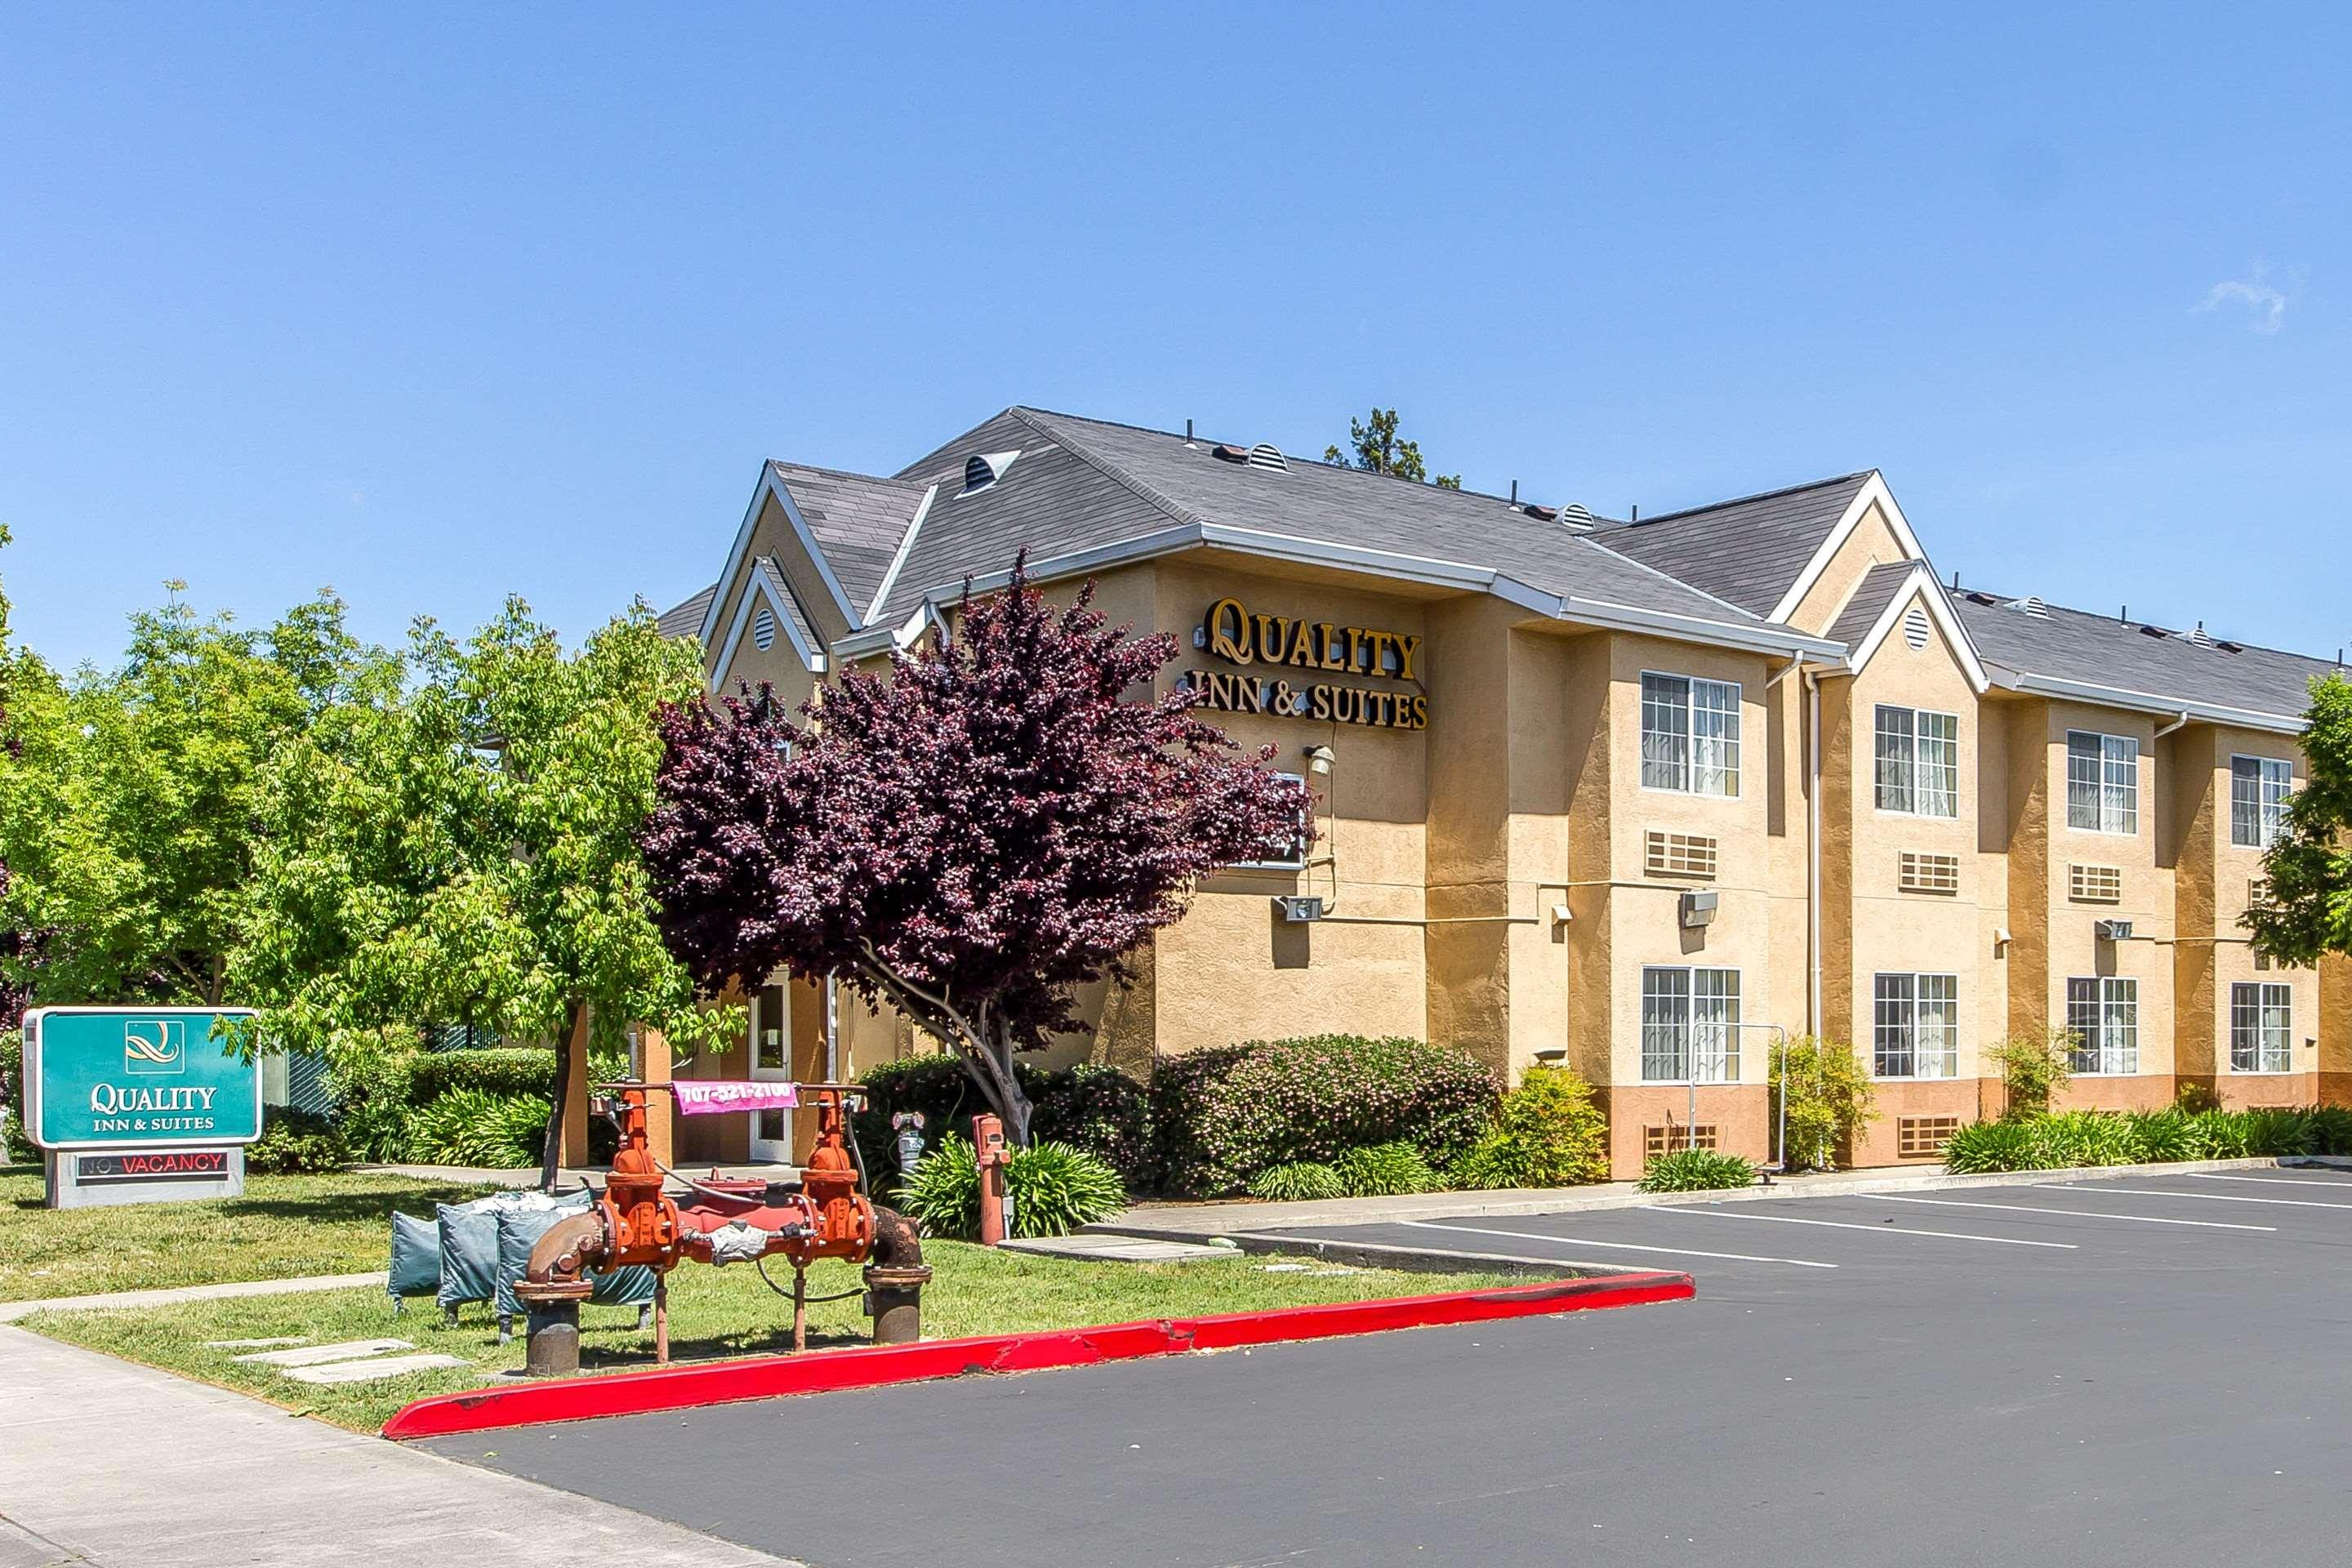 Quality Inn & Suites, Sonoma